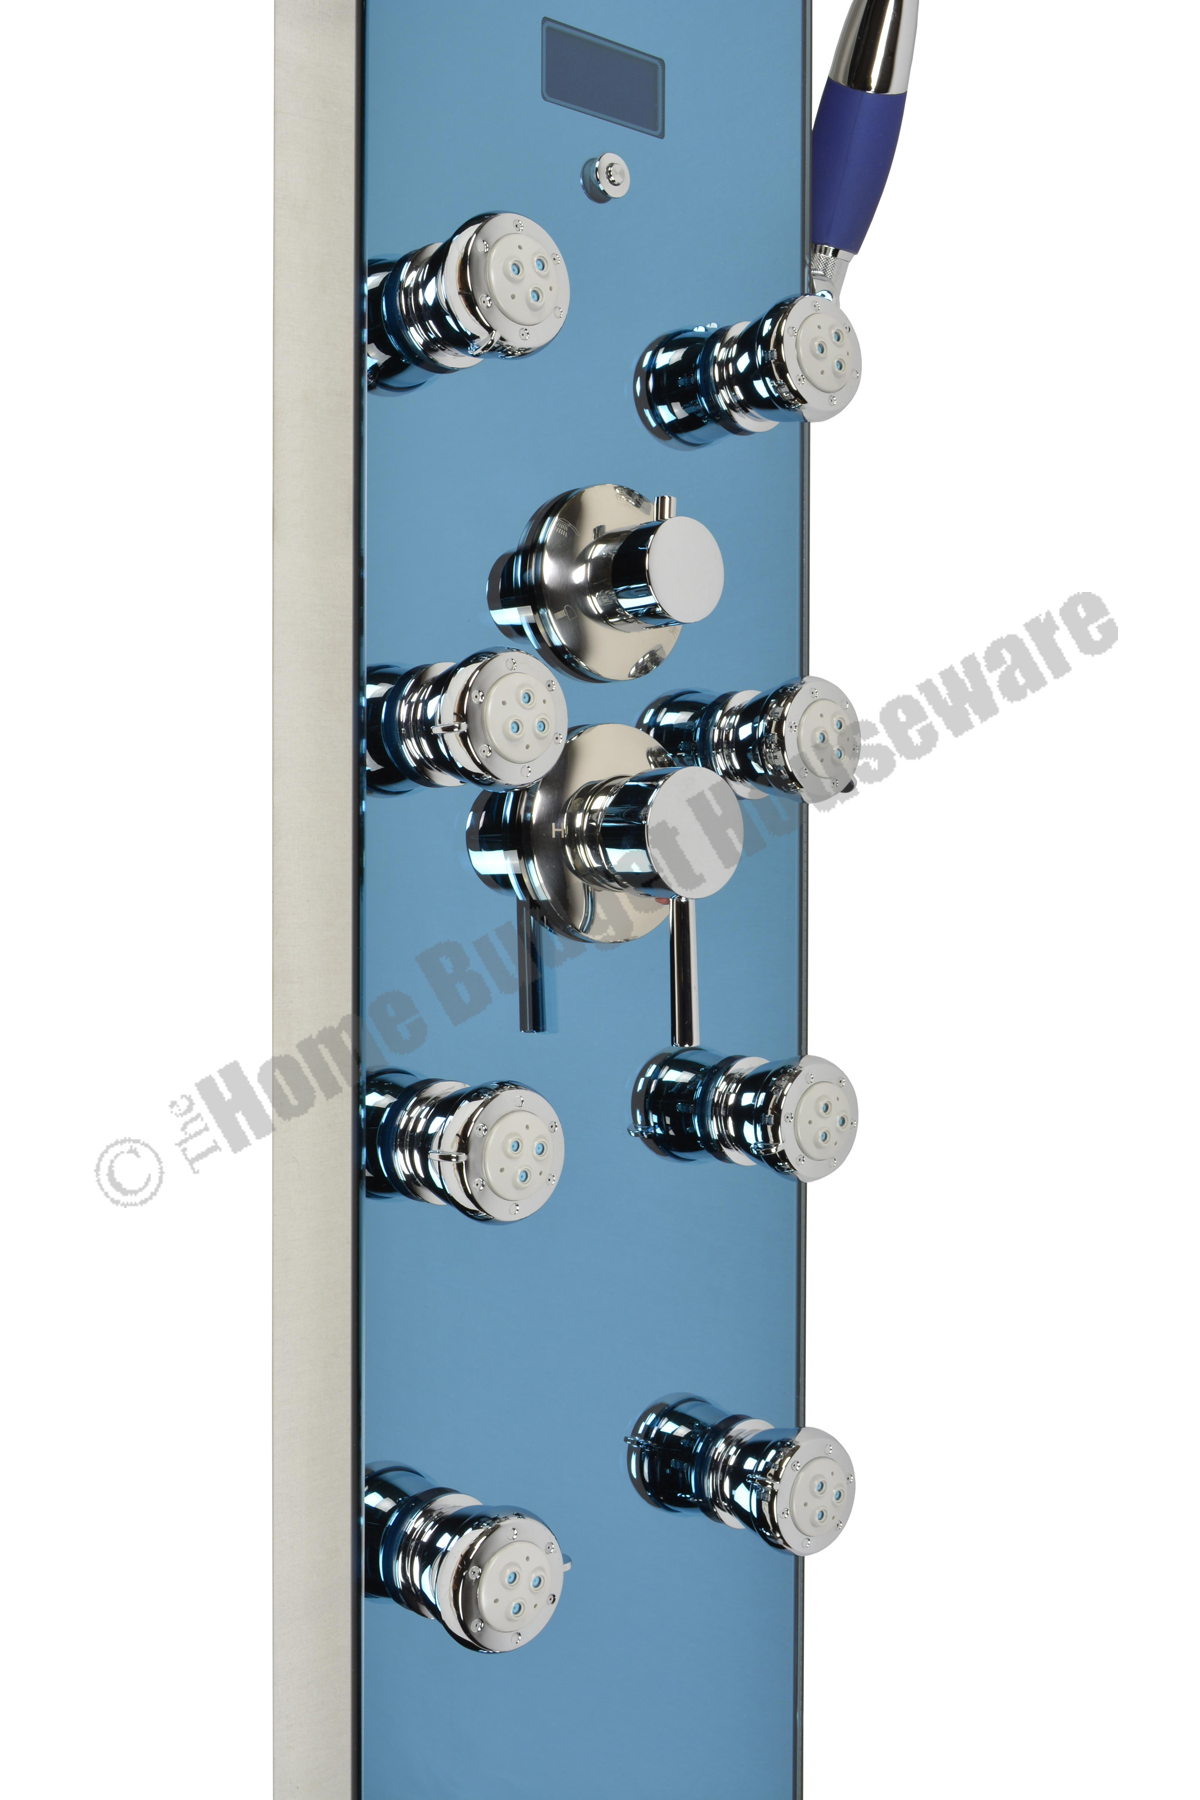 52 Shower Panel with rainfall showerhead 8 Jets Shower Panel System ...